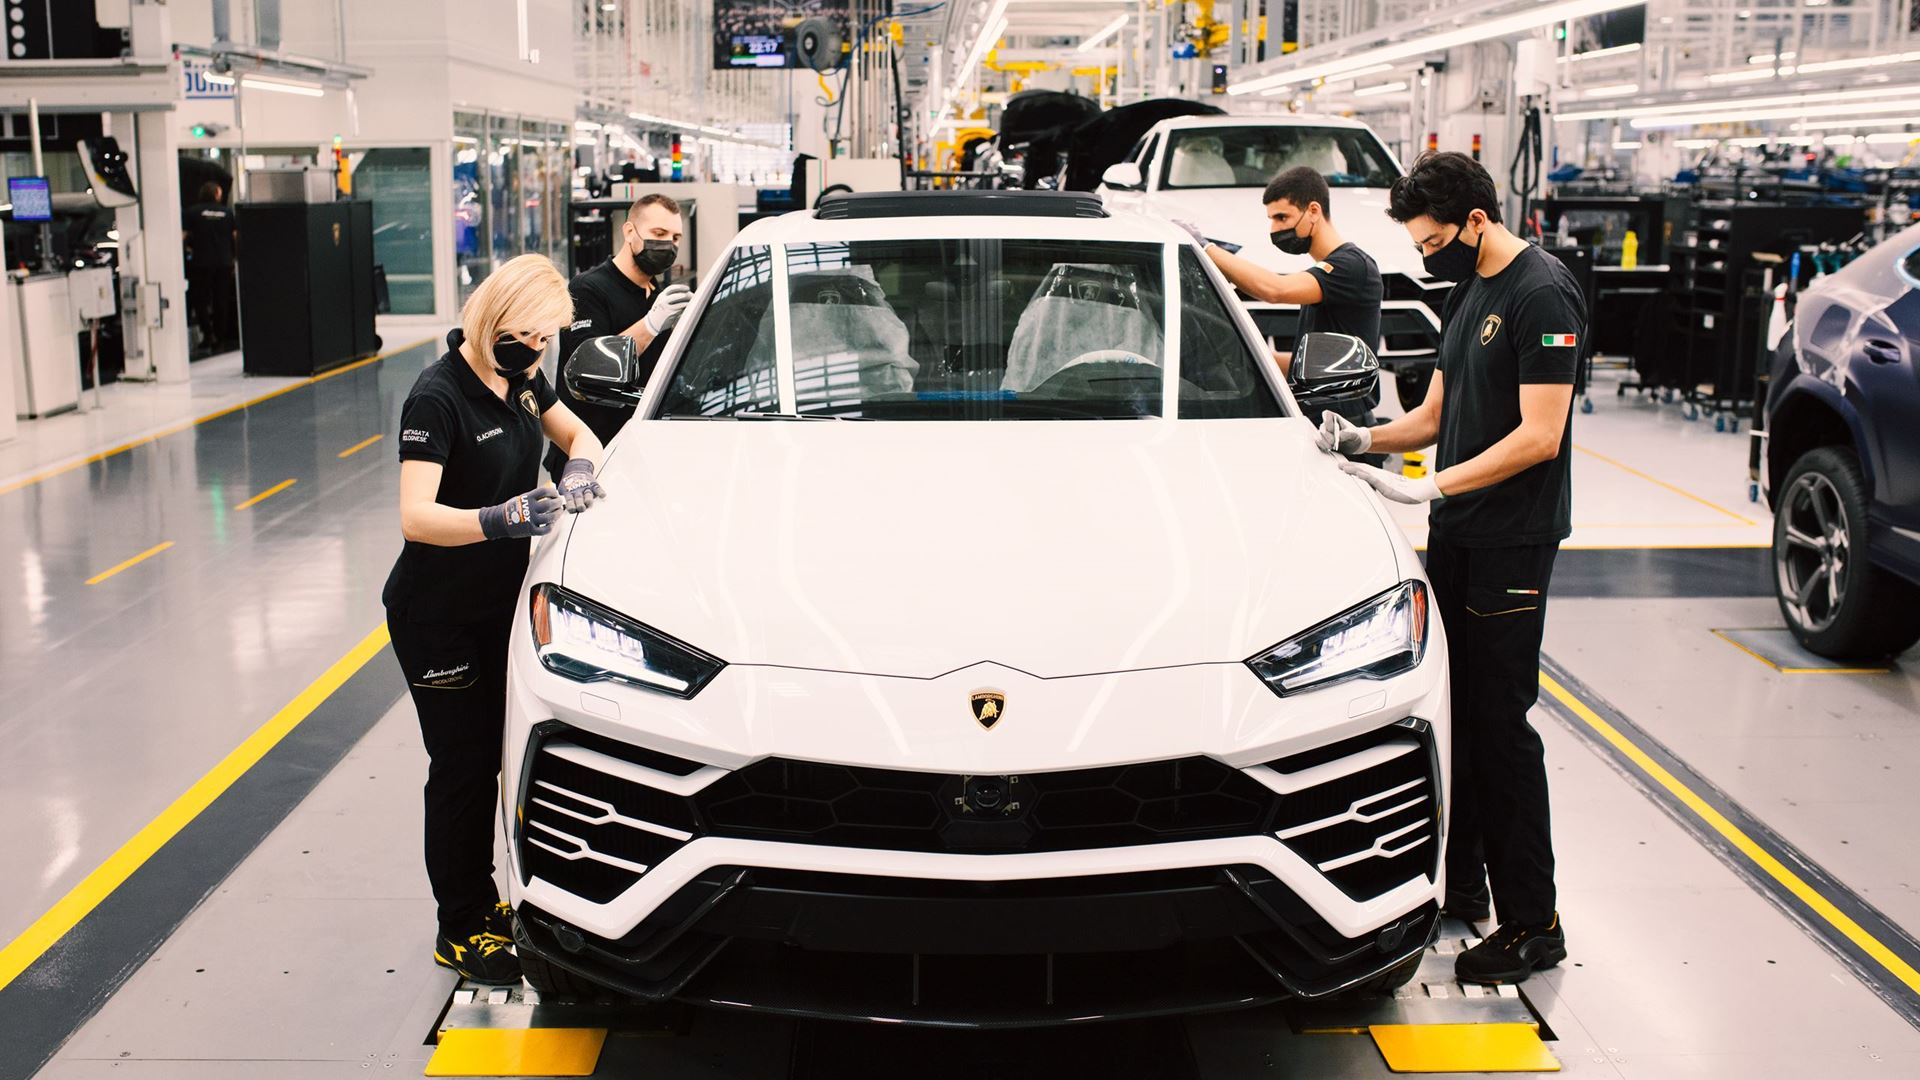 In the European Diversity Month, Automobili Lamborghini confirms its commitment to diversity, inclusion and equality with innovative programs - Image 4